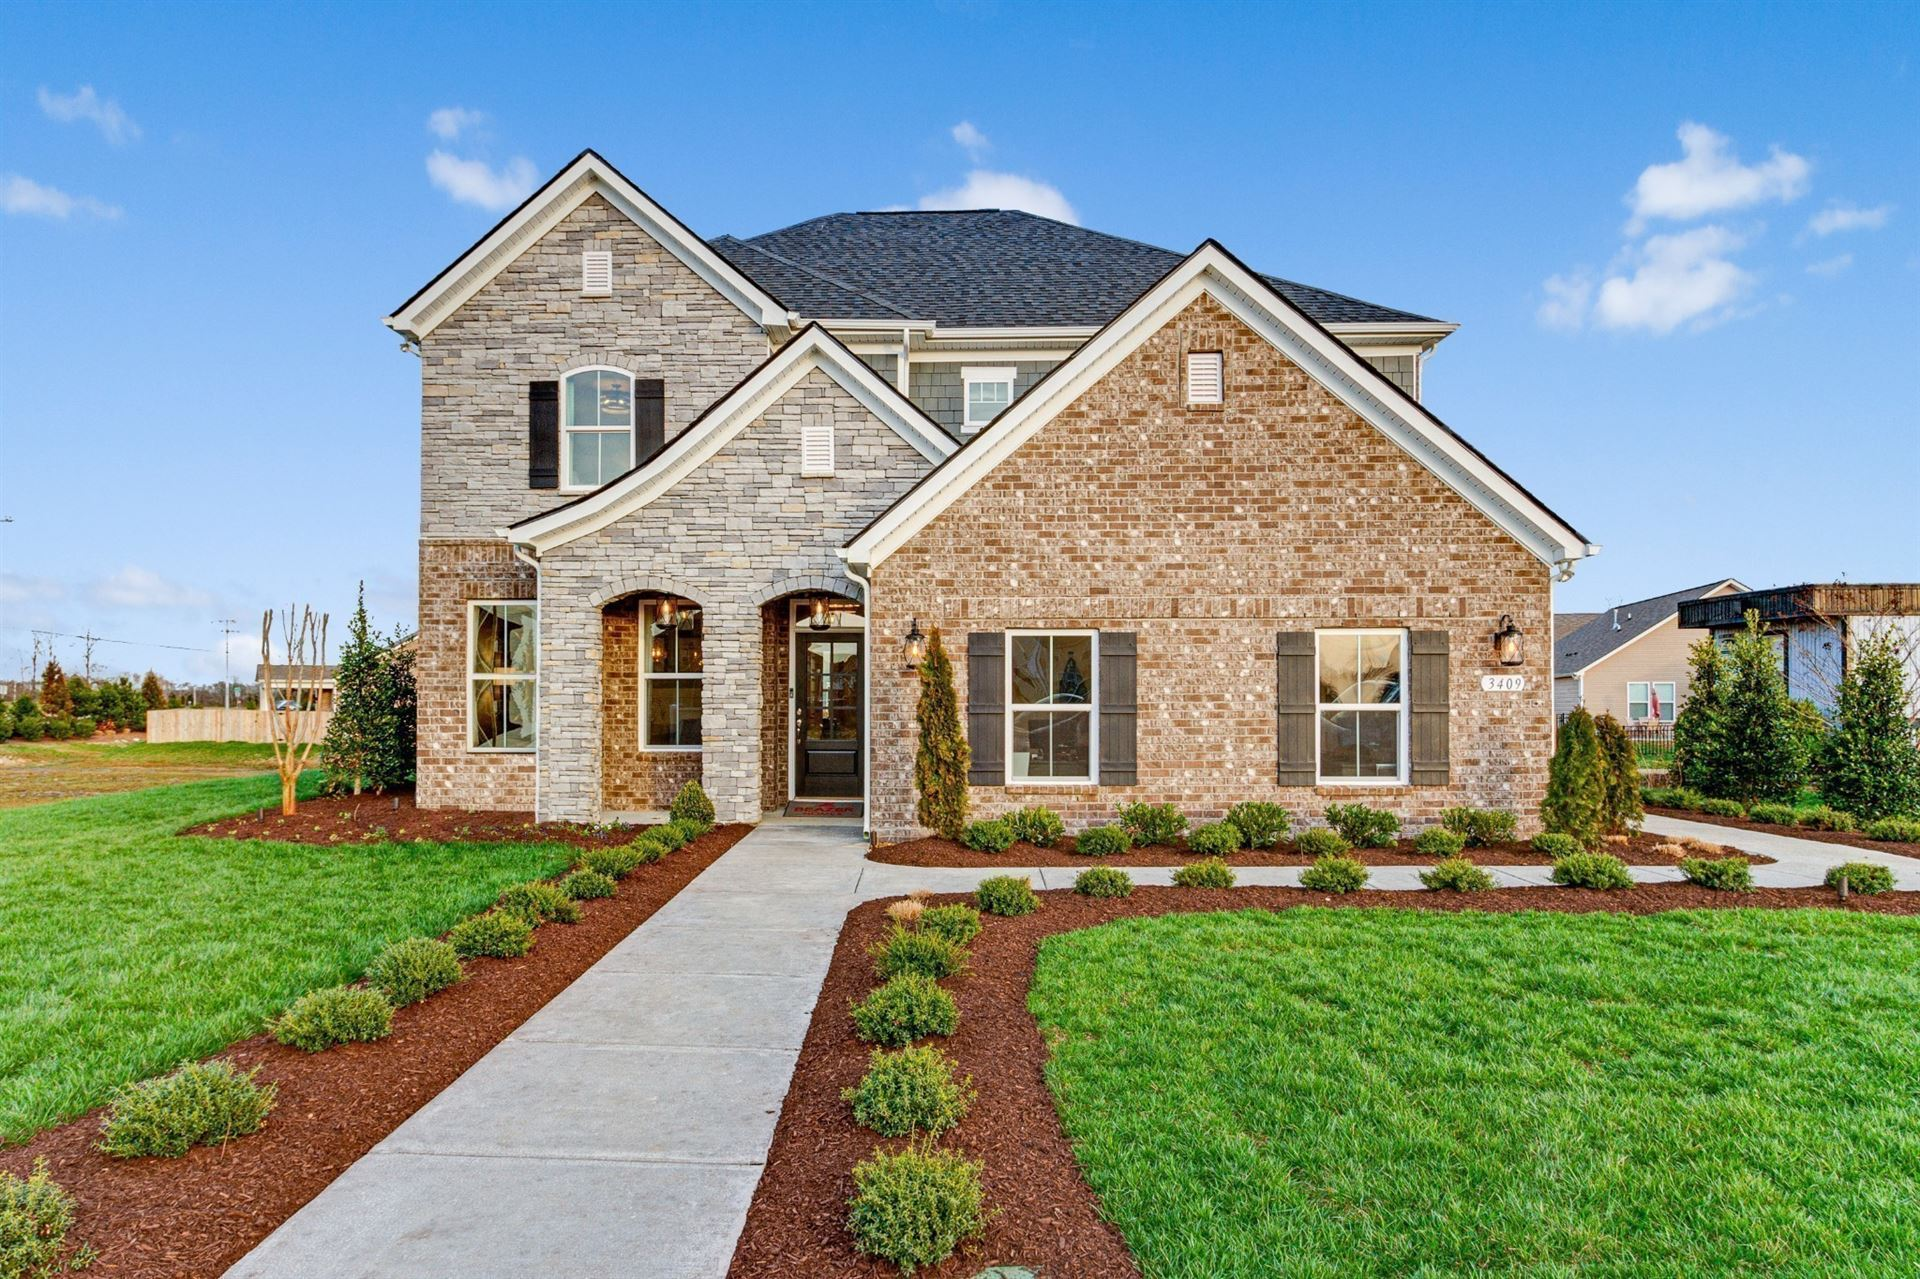 2567 Old Blue LN(To Be Built), Murfreesboro, TN 37130 - MLS#: 2231043